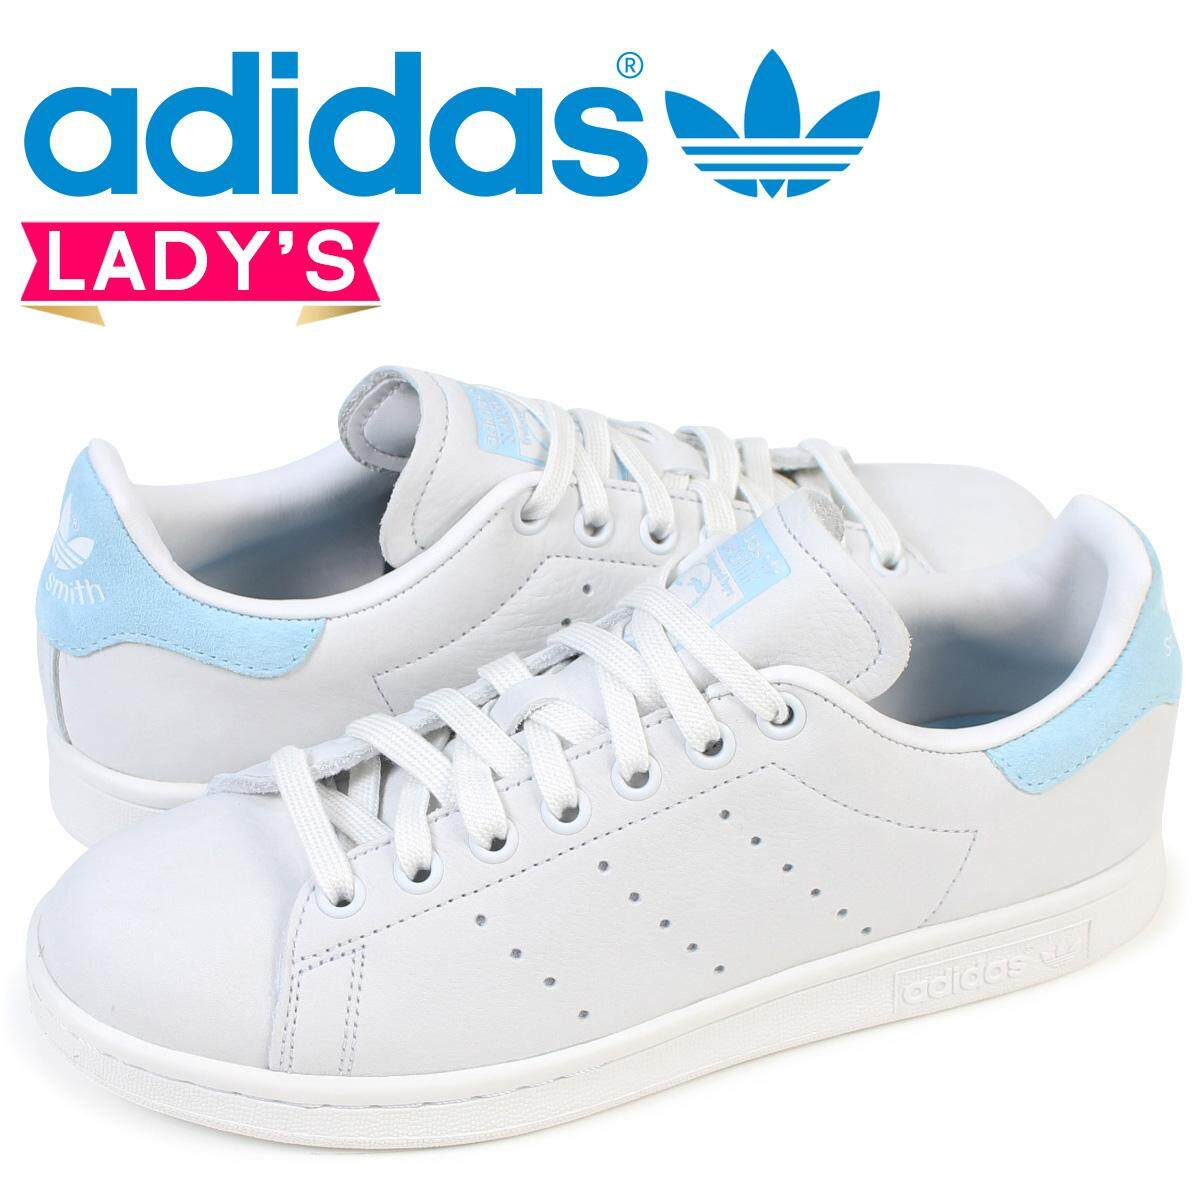 Adidas Women s Shoes price in Malaysia - Best Adidas Women s Shoes ... 3310936ecf